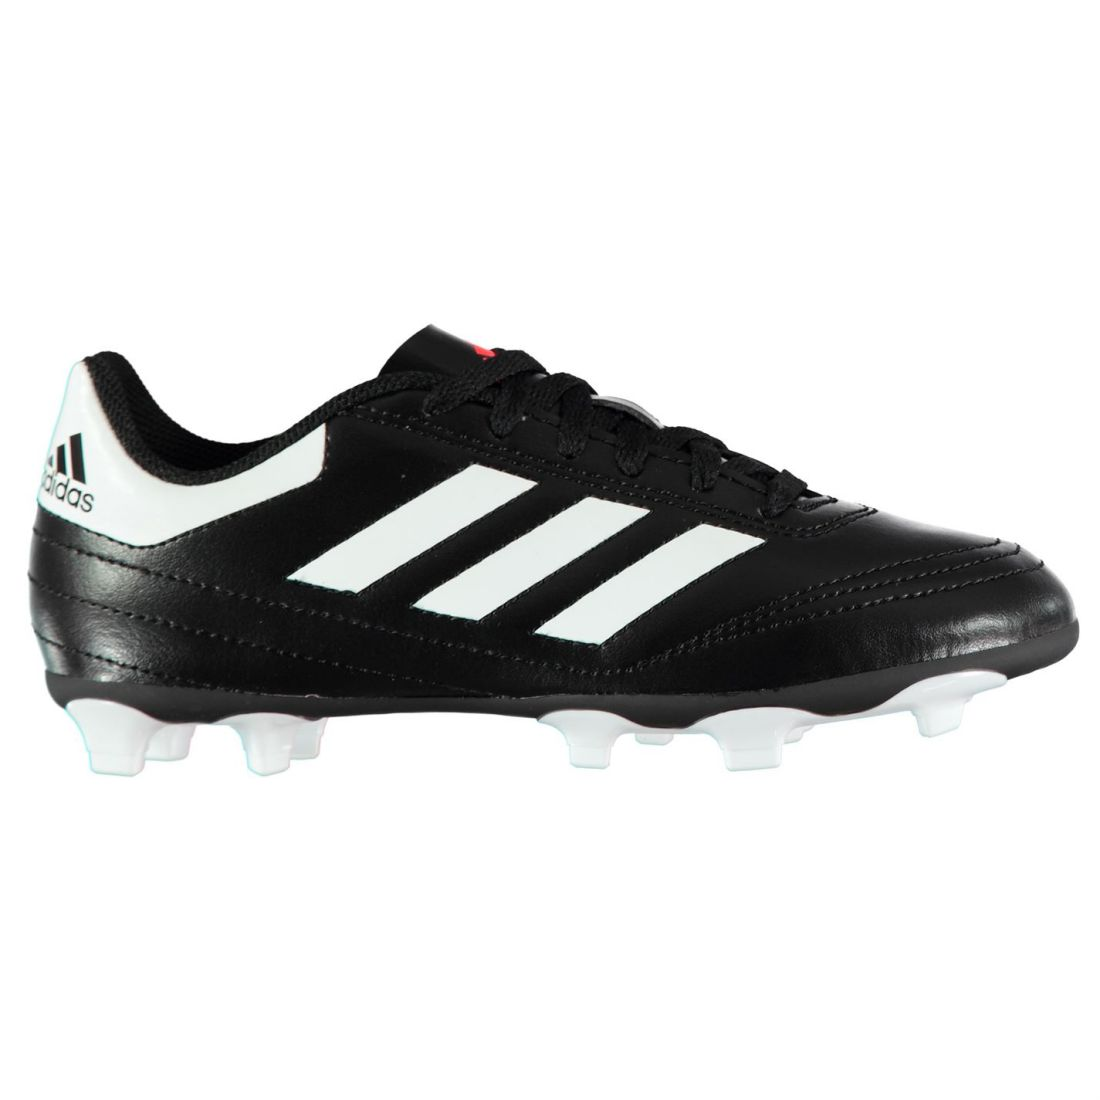 241a32d21 Image is loading adidas-Kids-Goletto-Childrens-FG-Football-Boots-Lace-